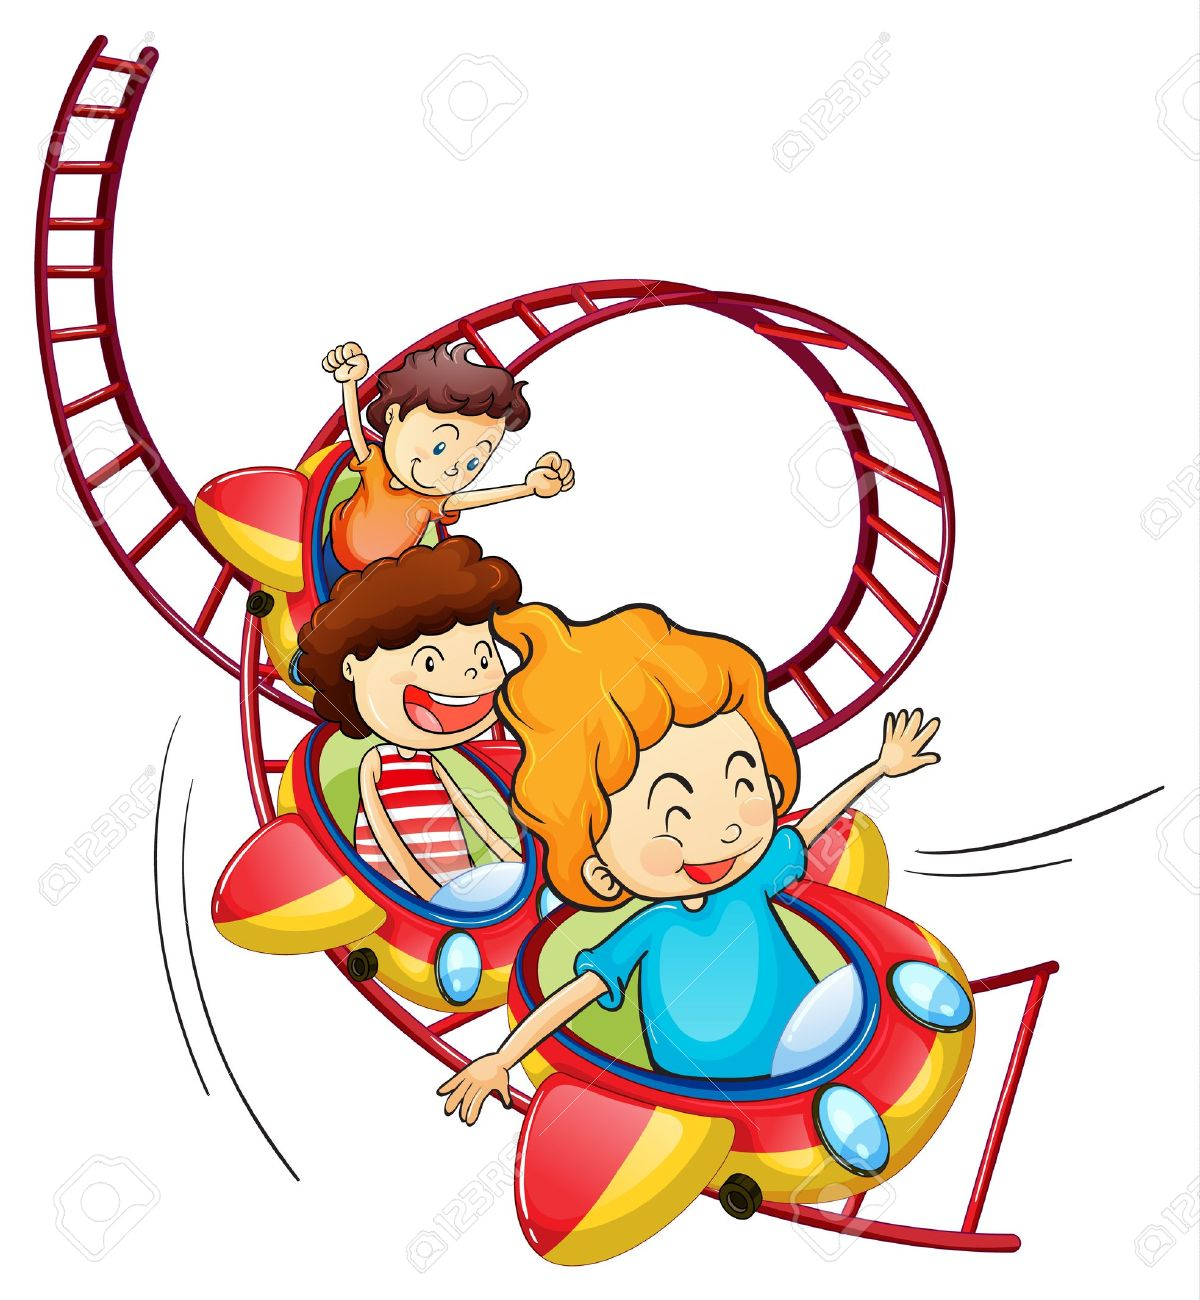 1200x1300 Illustration Of Three Children Riding In A Roller Coaster